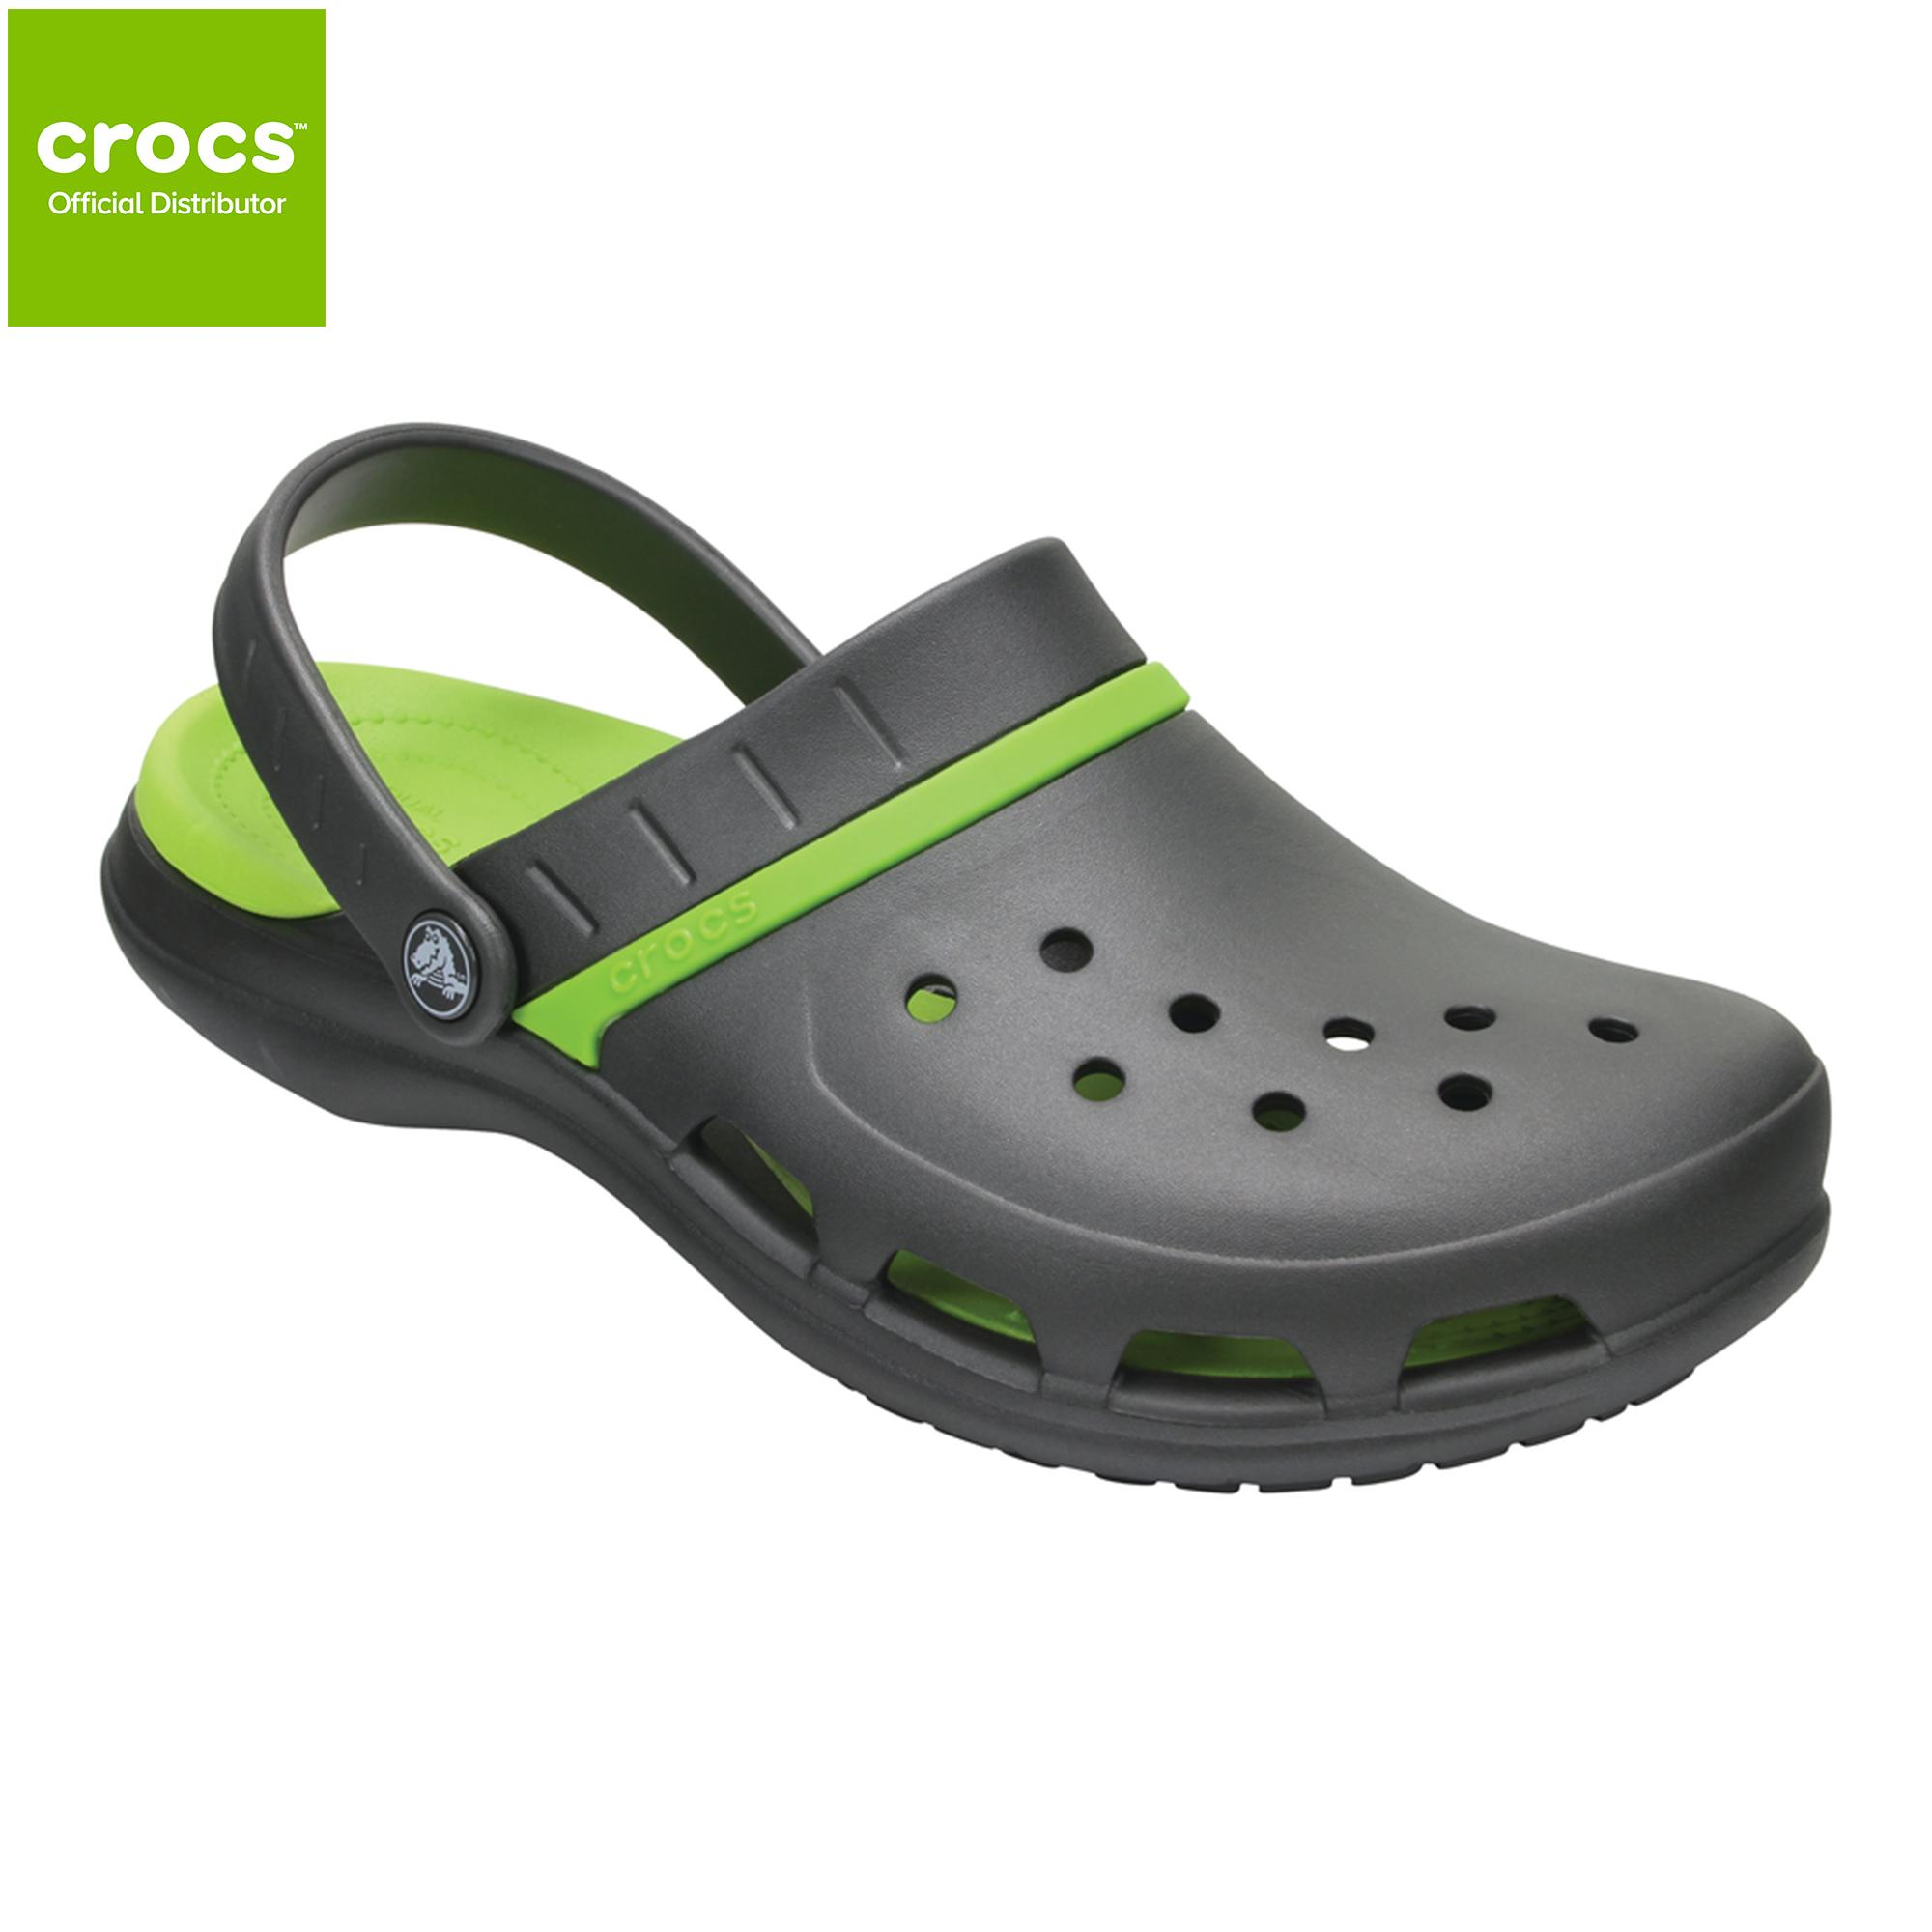 04b7a57585 Crocs Philippines  Crocs price list - Crocs Flats